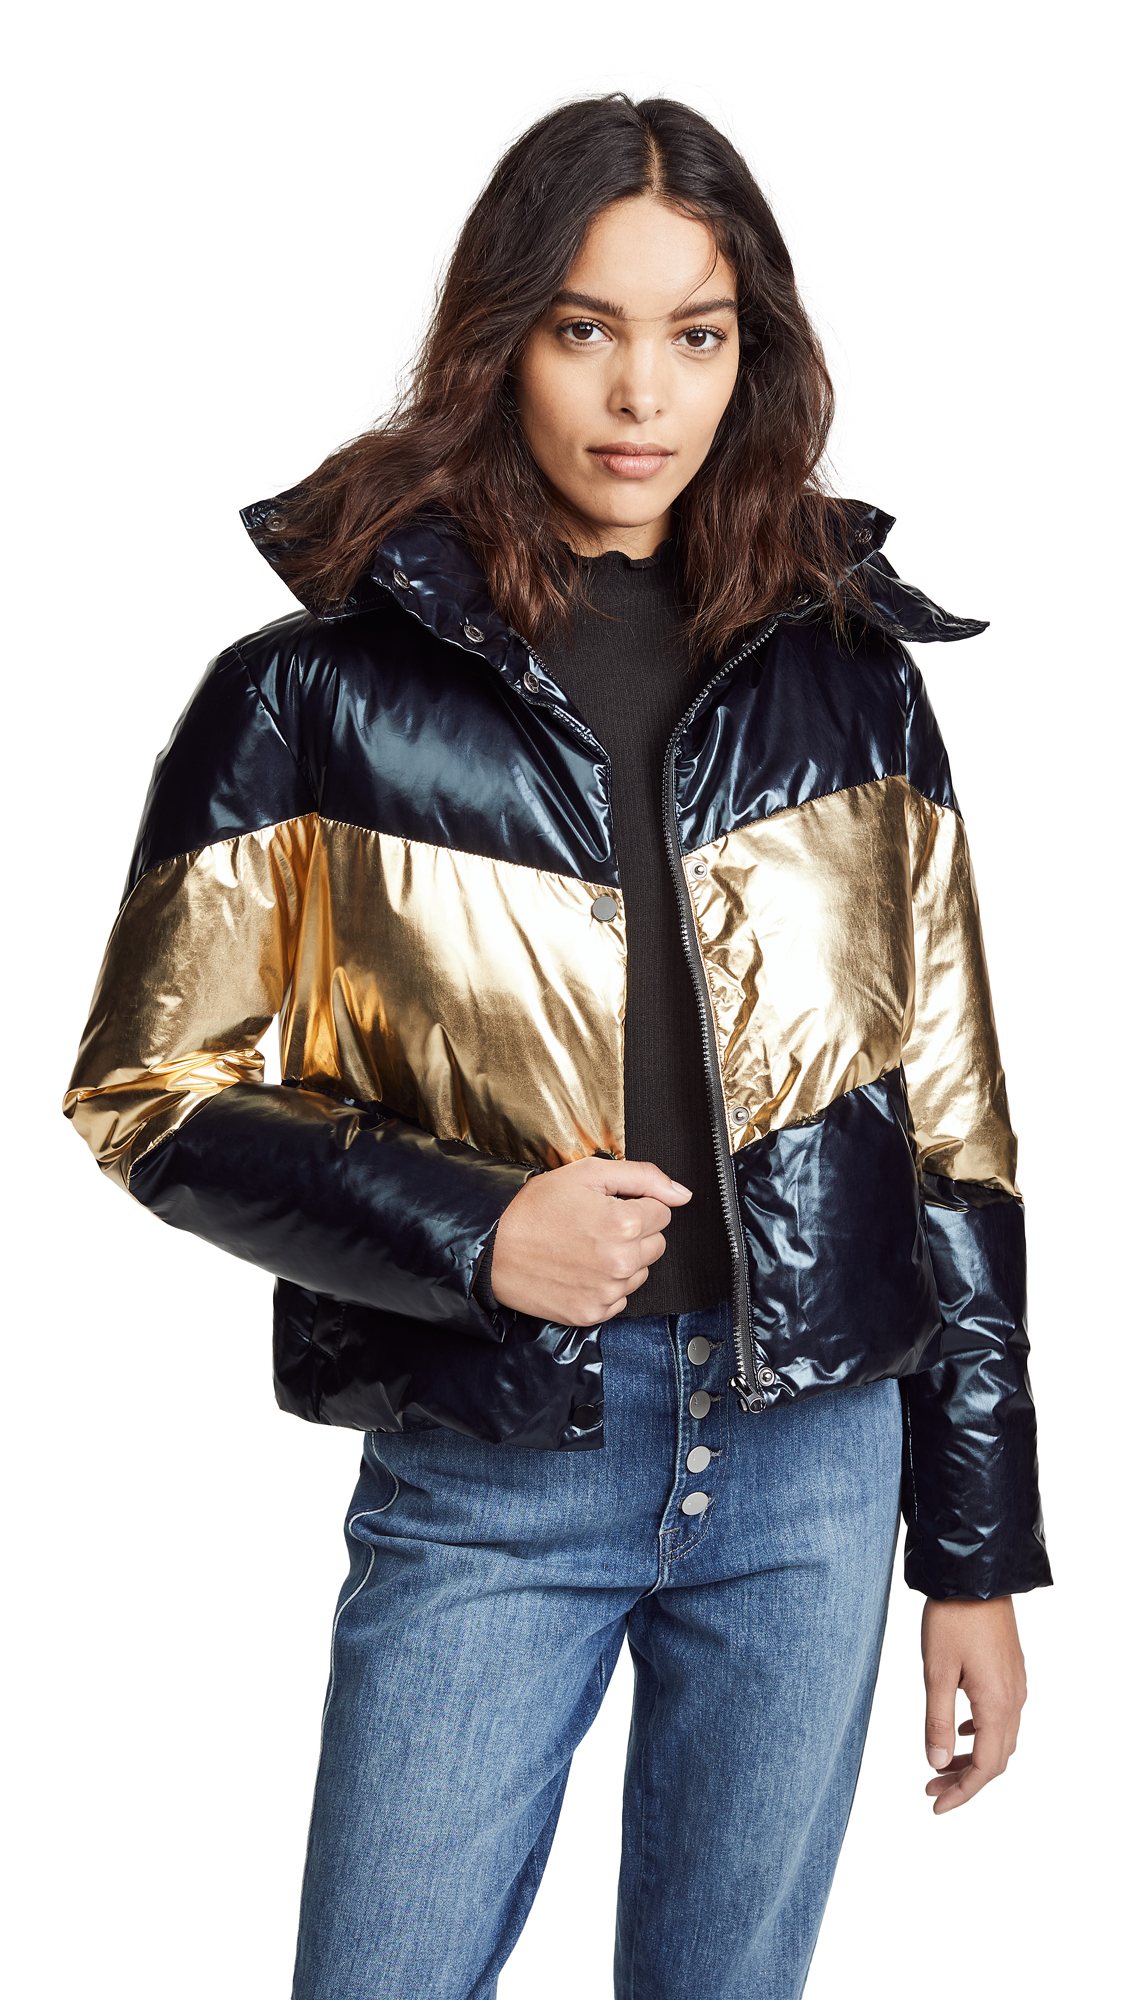 GENERATION LOVE Clarke Puffer Jacket in Black/Gold